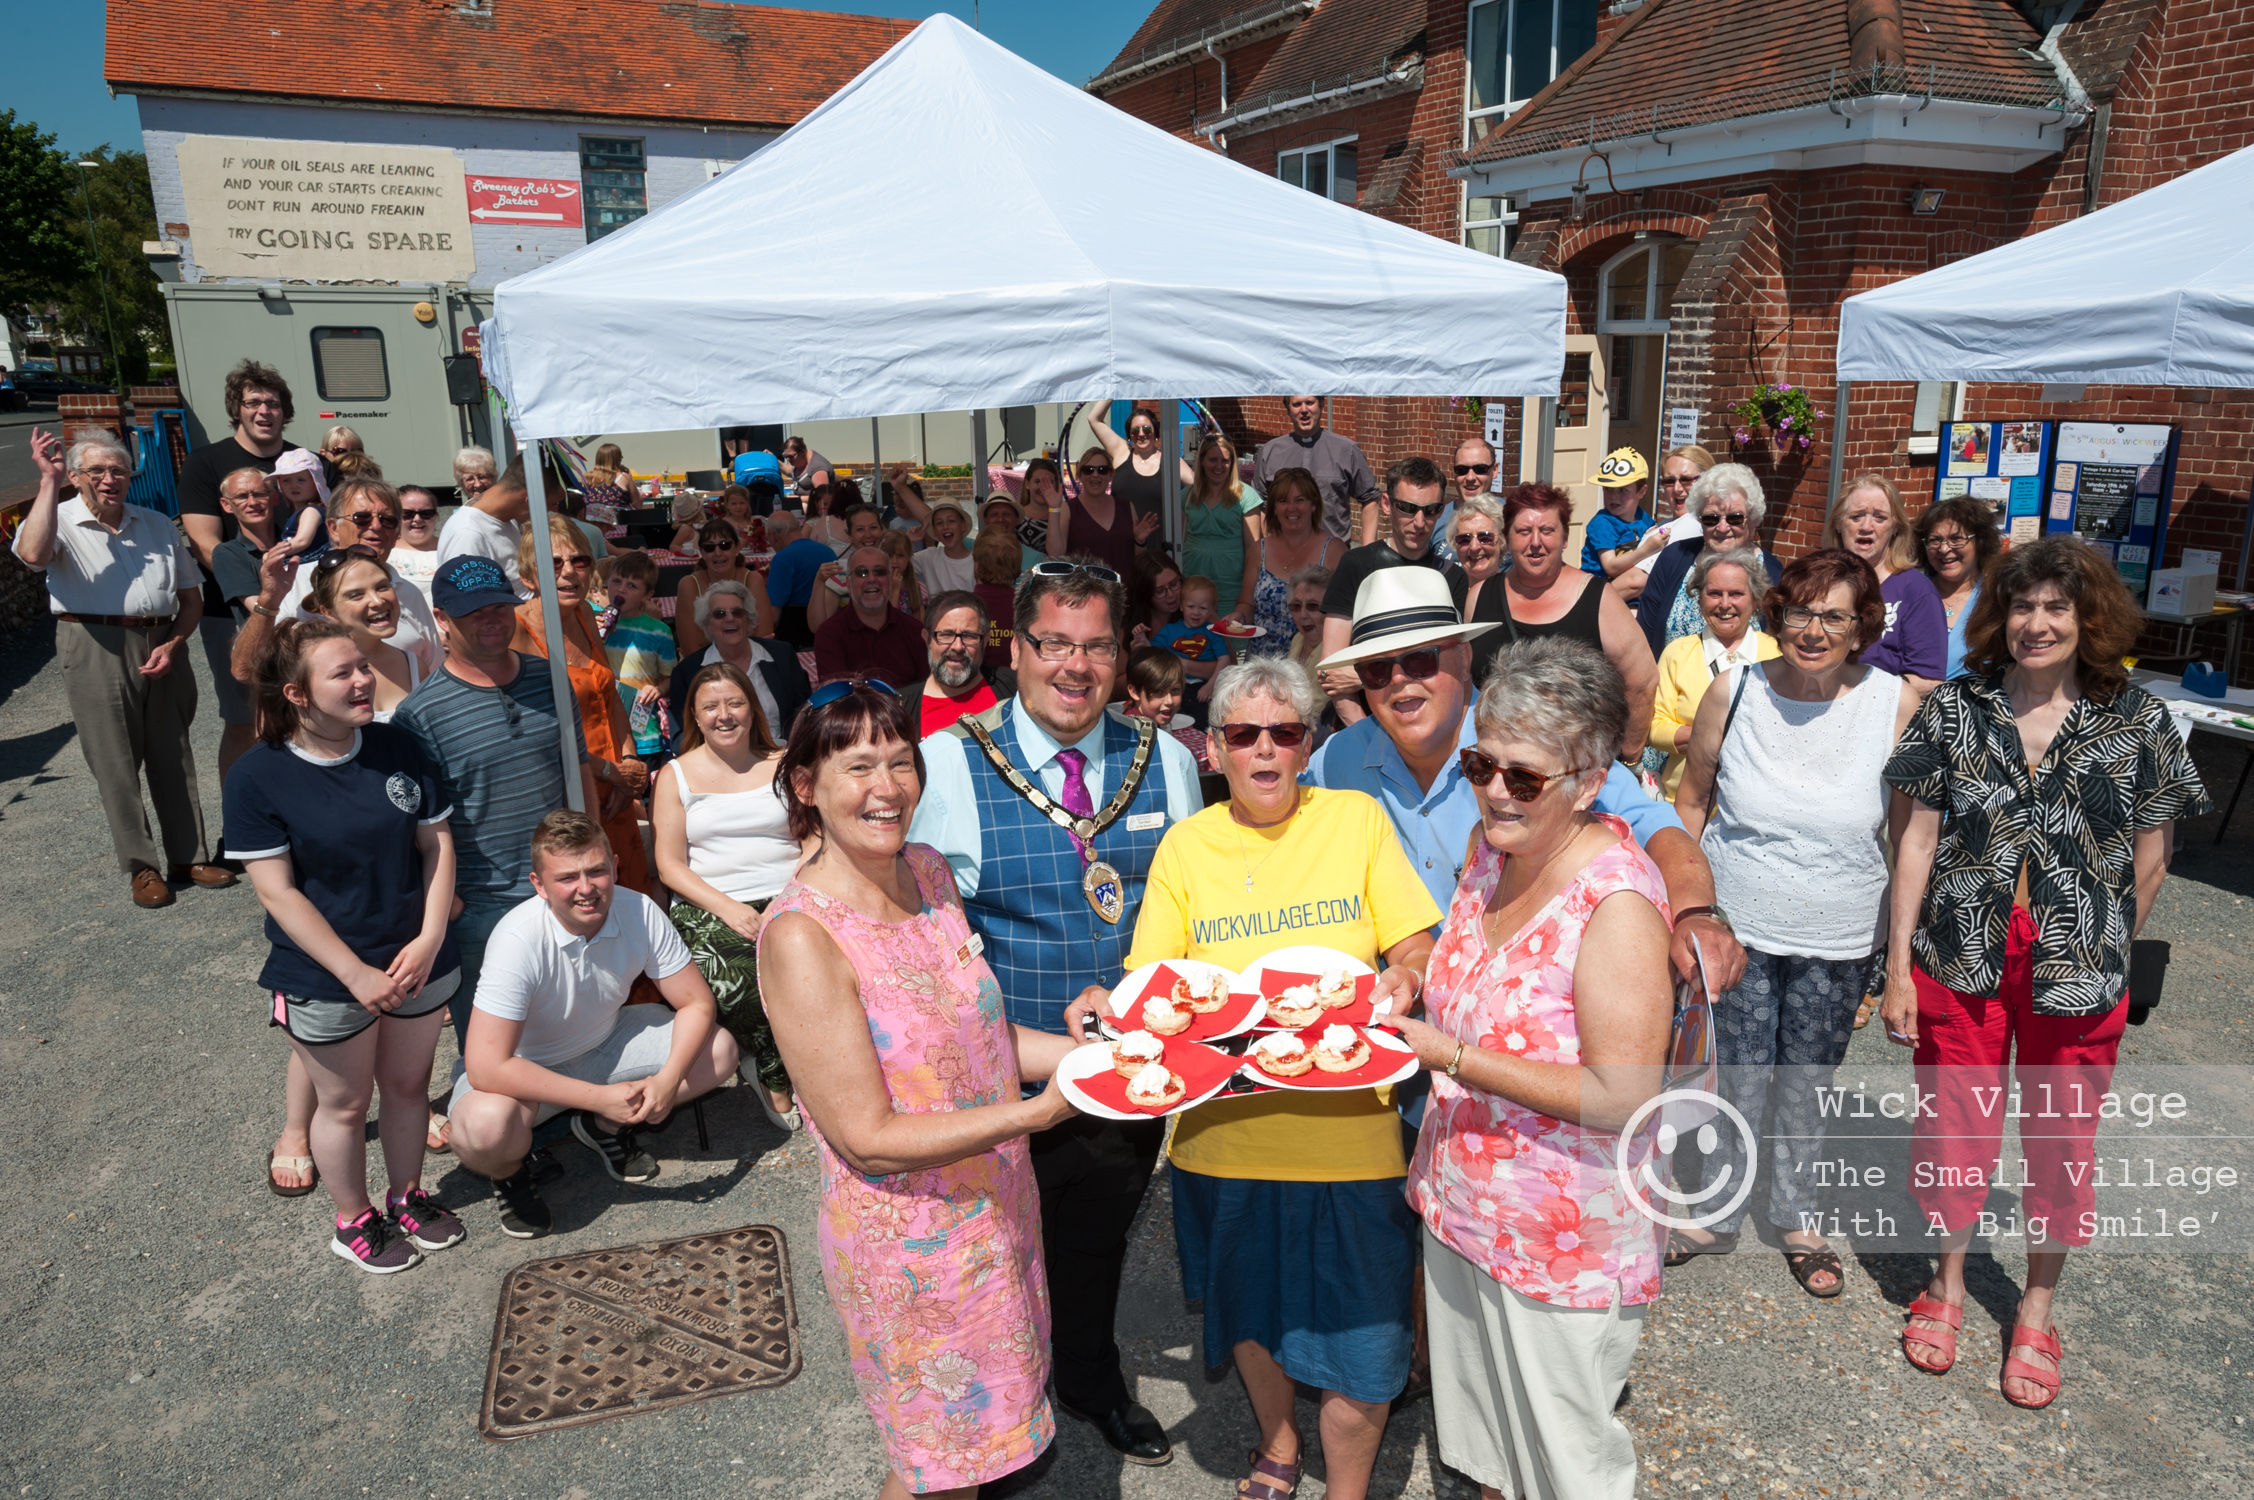 The Wick Village community Great Get Together © Scott Ramsey